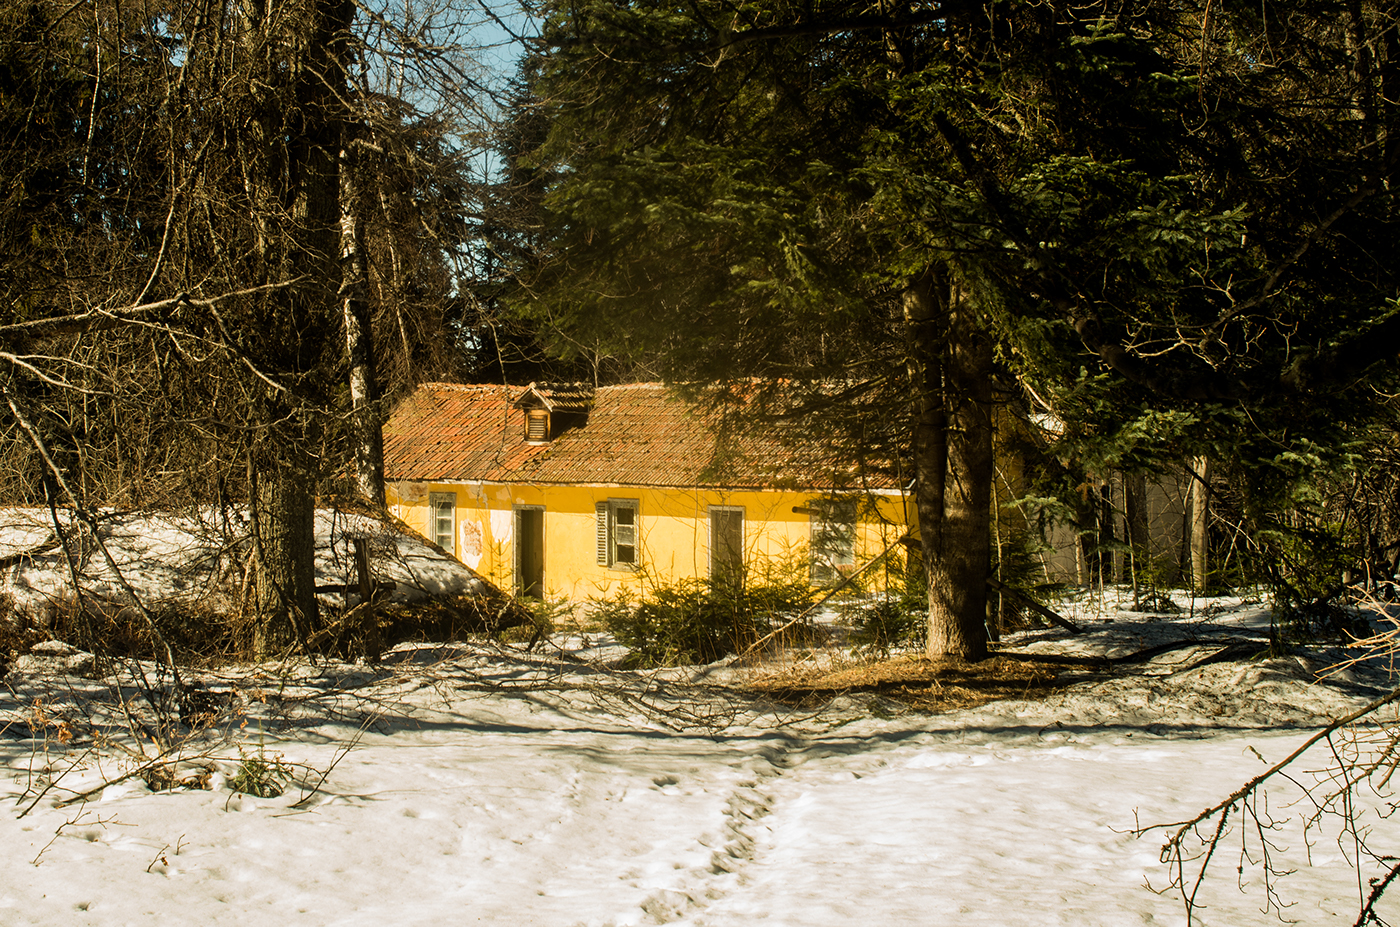 The Yellow House.